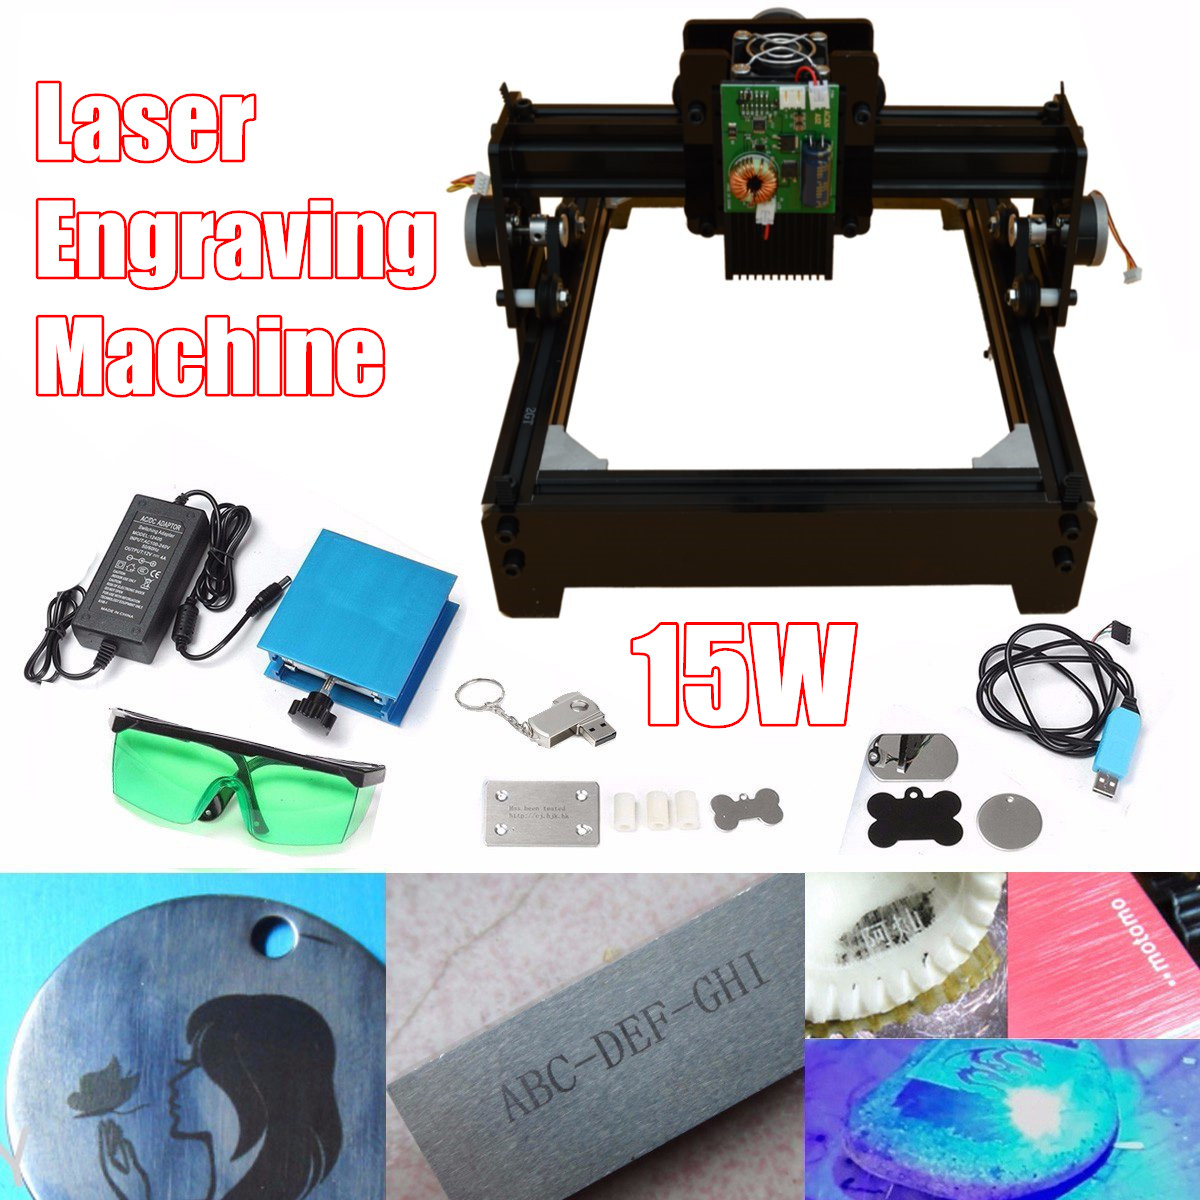 15W DIY Mini CNC Laser Engraving Machine CNC Crouter CNC Laser cutter Wood Router Metal Marking Engraving 2018 Best Advanced Toy цены